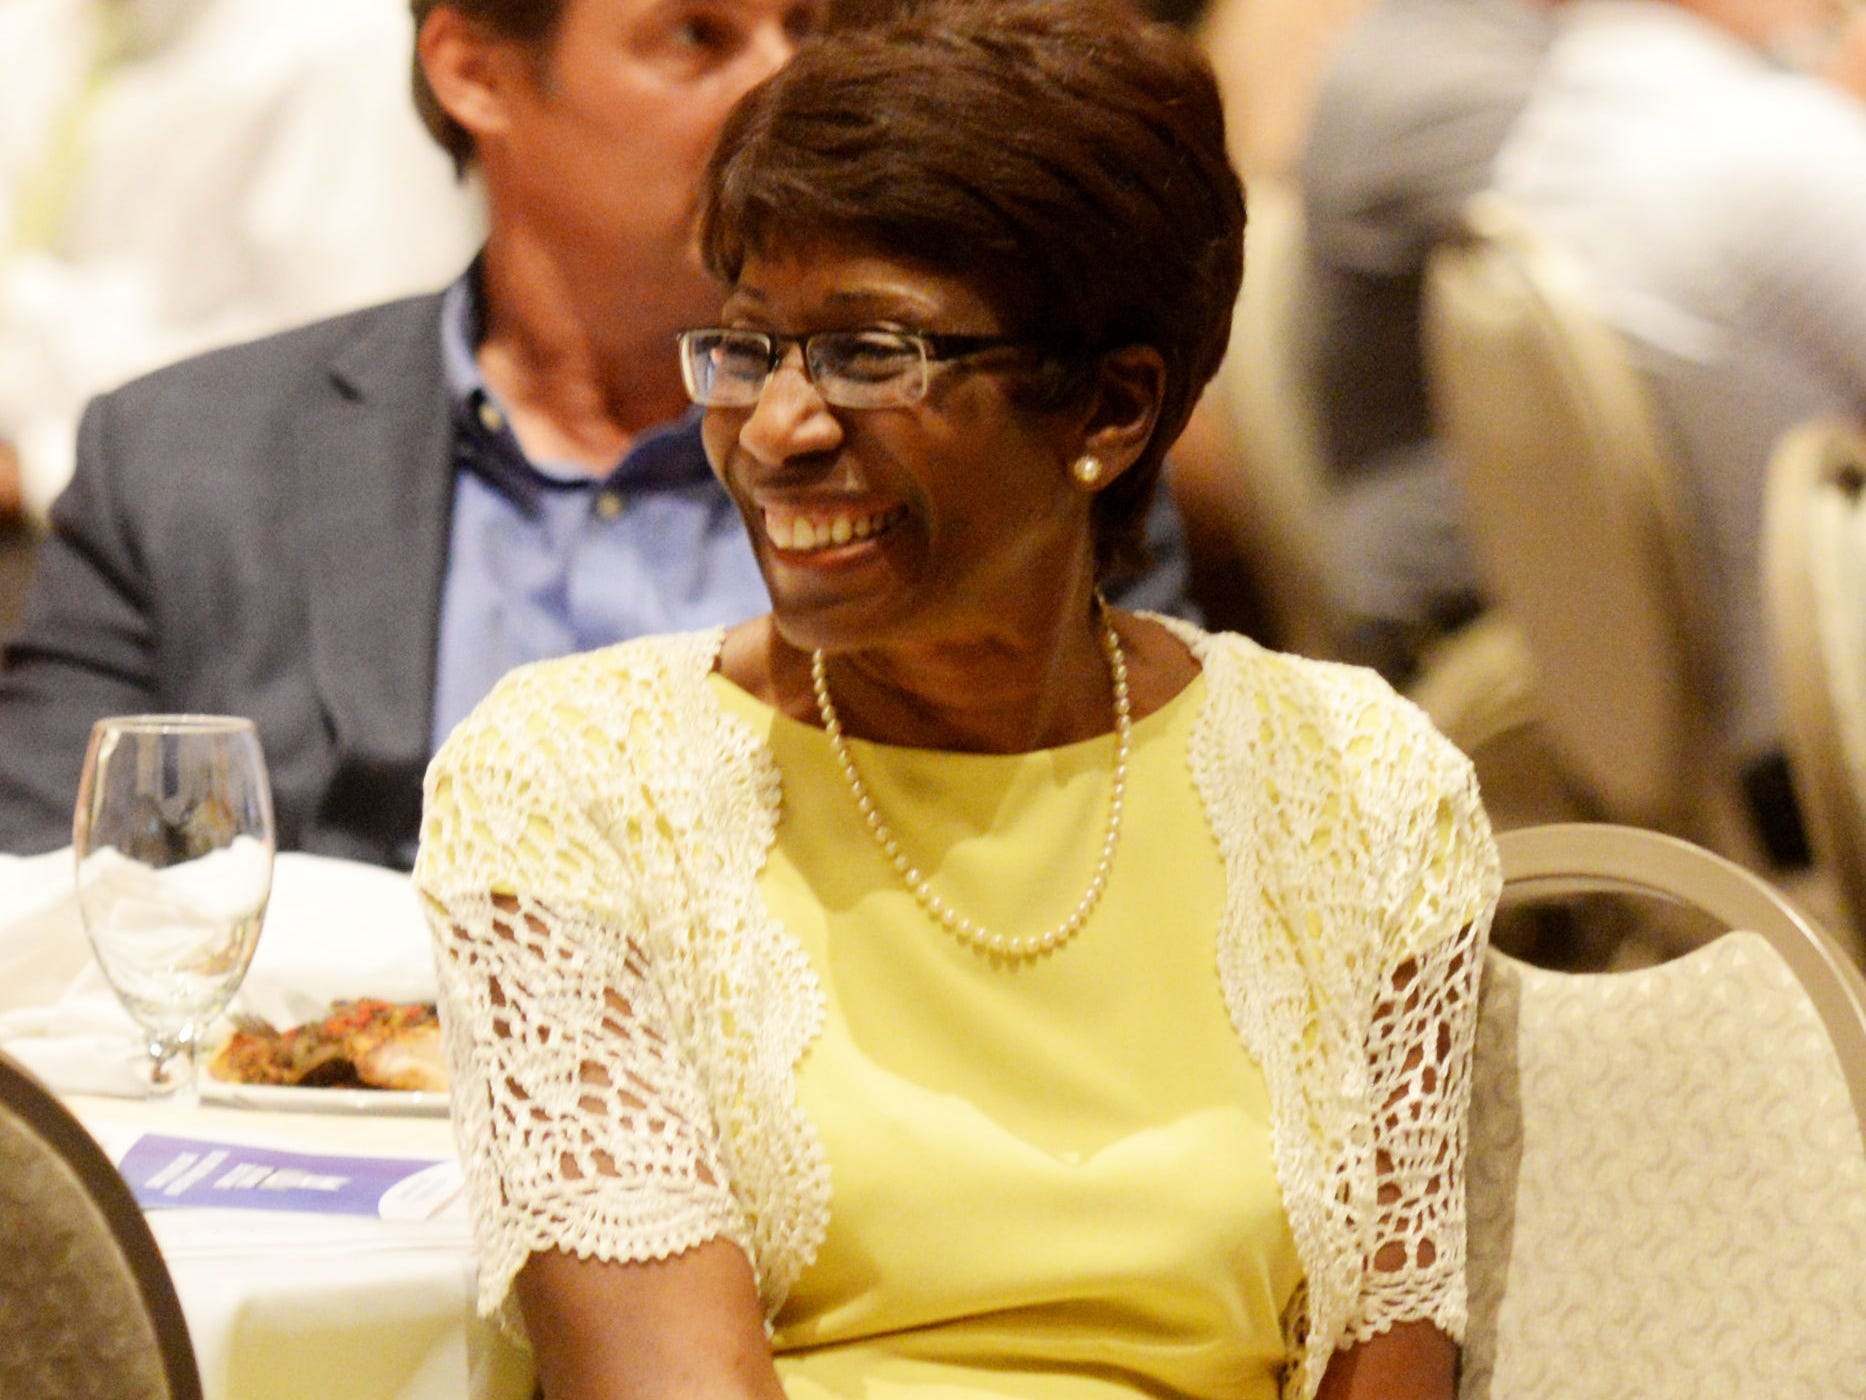 Shreveport Mayor Ollie Tyler smiles at the banquet Tuesday evening at the Shreveport Convention Center.